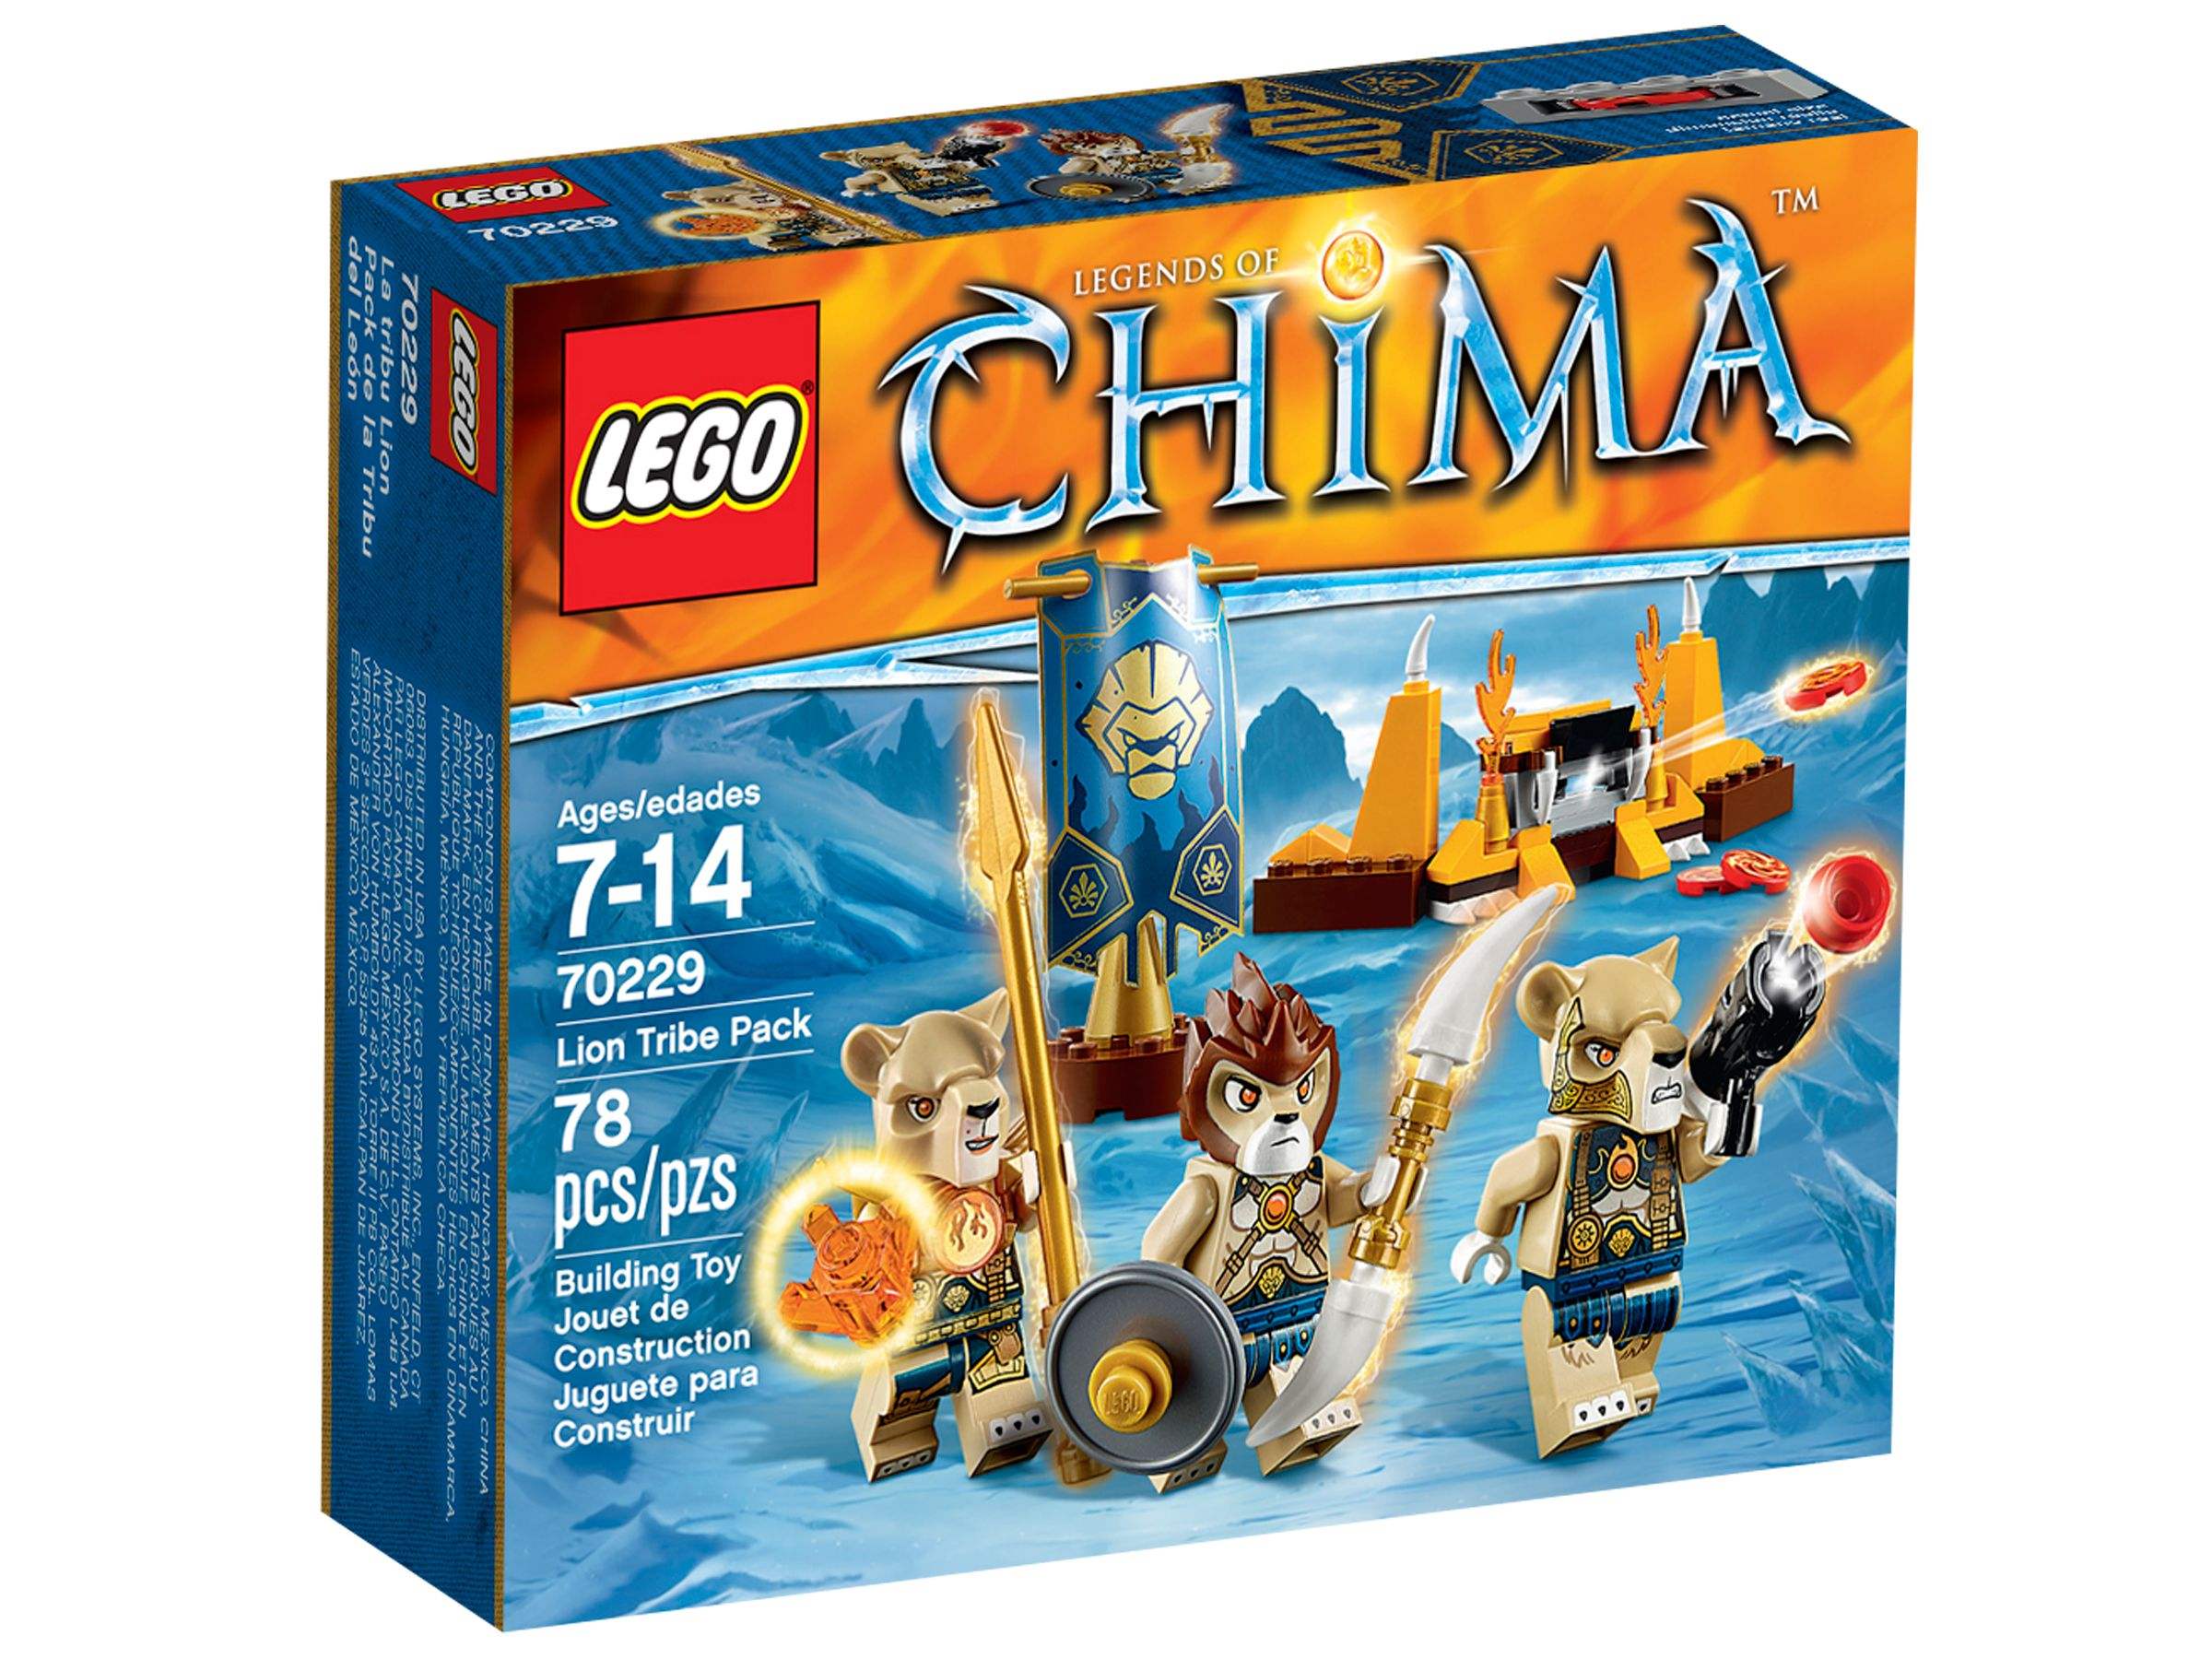 LEGO Legends Of Chima 70229 Löwenstamm-Set LEGO_70229_alt1.jpg